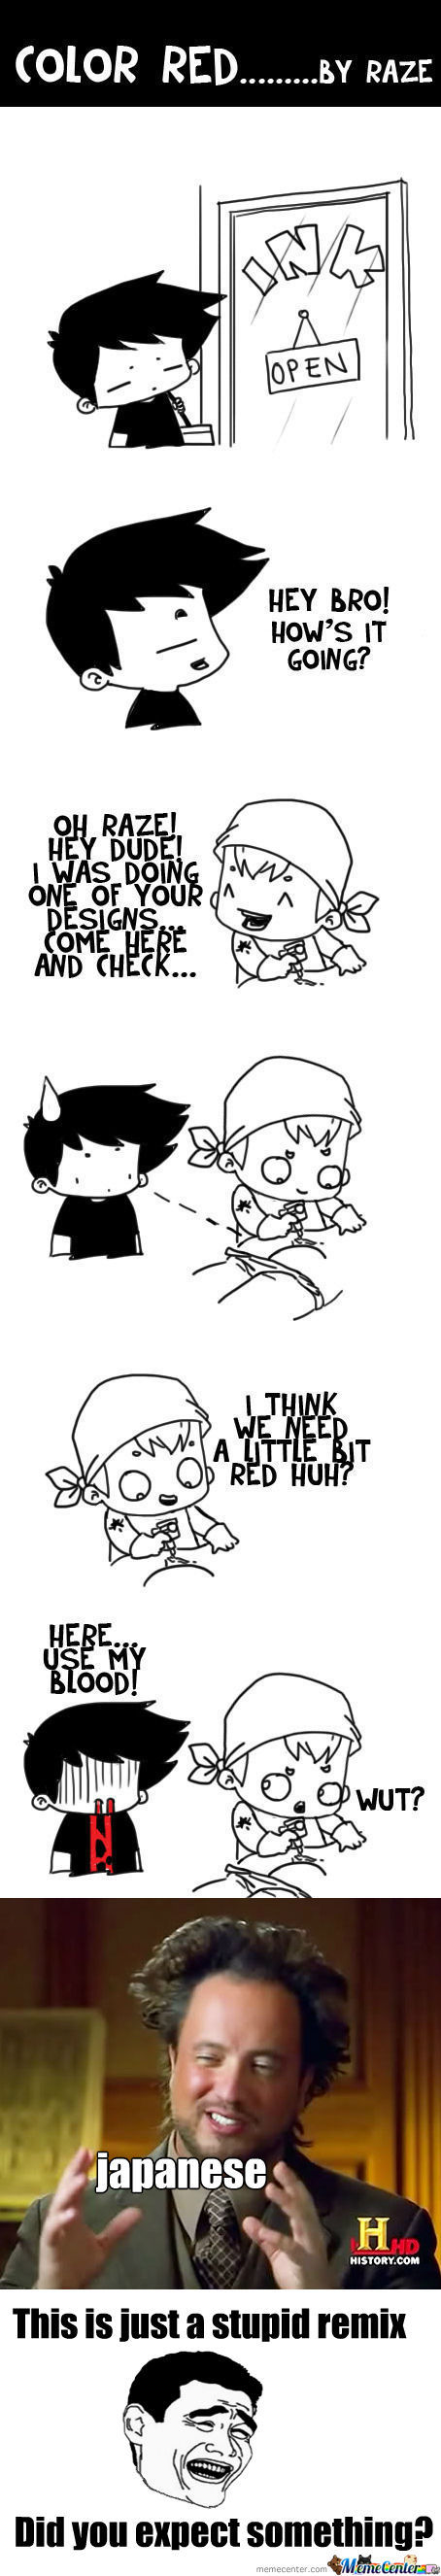 [RMX] Color Red